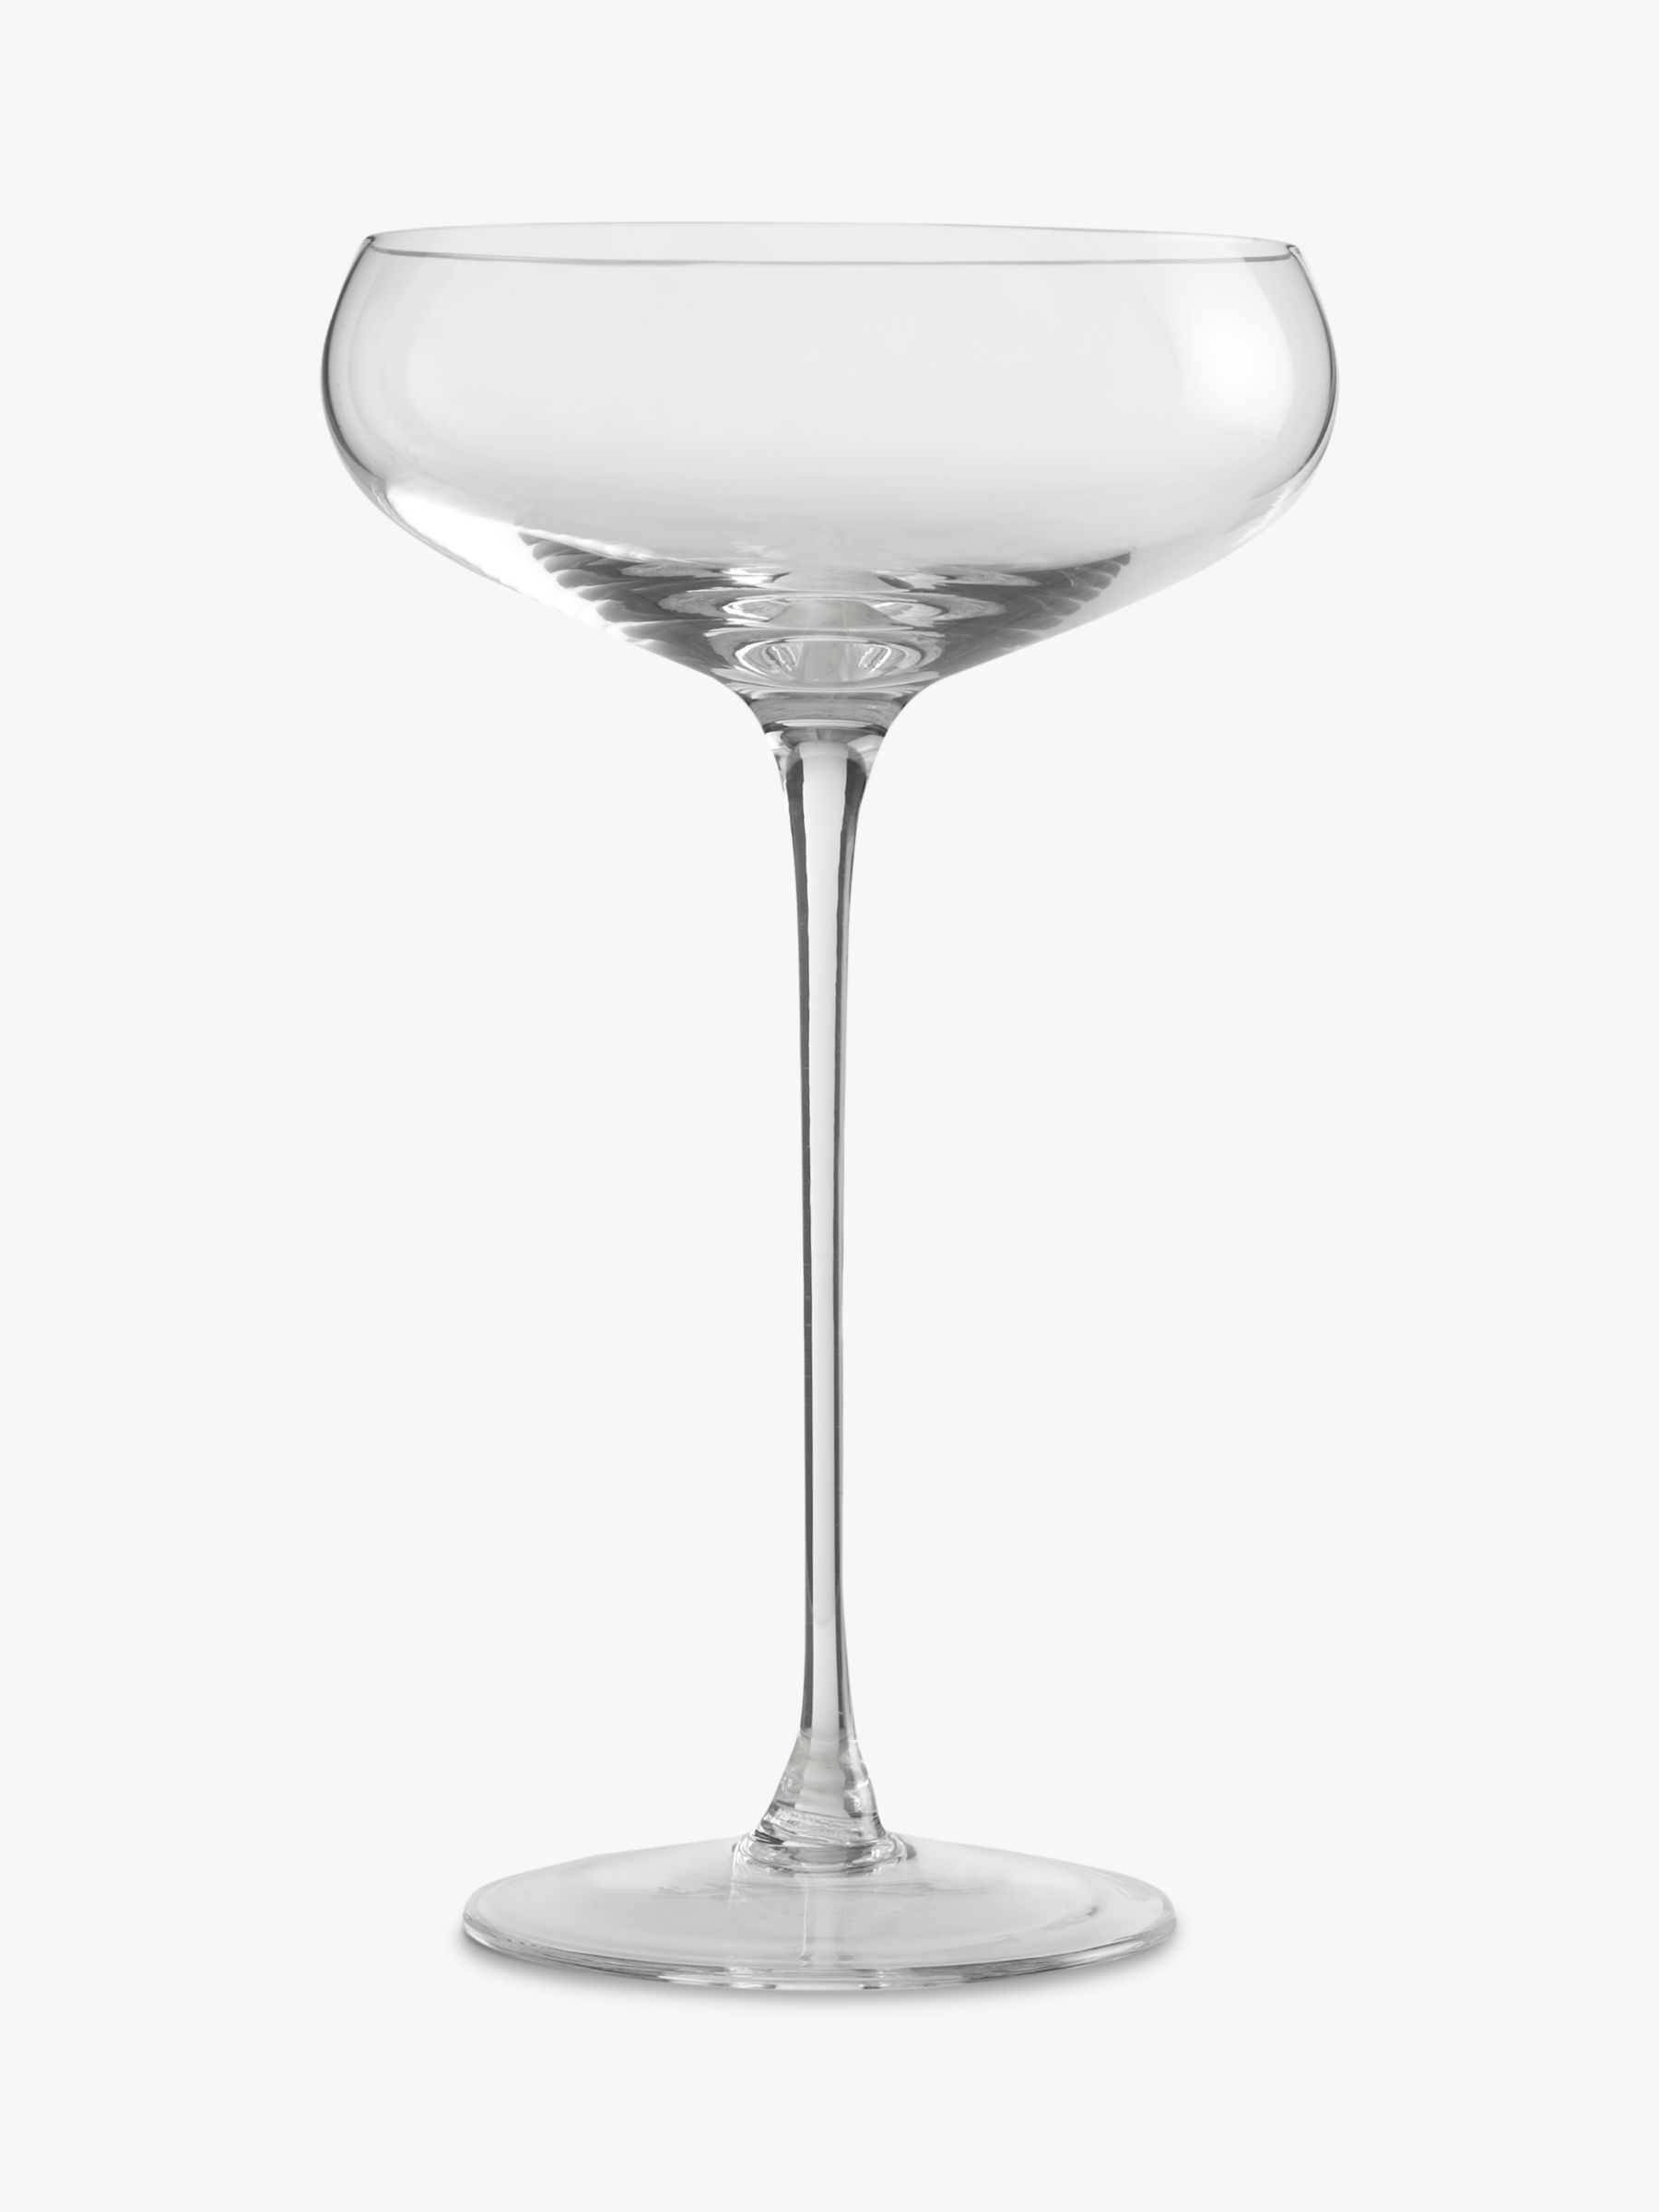 LSA International LSA International Bar Collection Champagne Saucers, Set of 4, 300ml